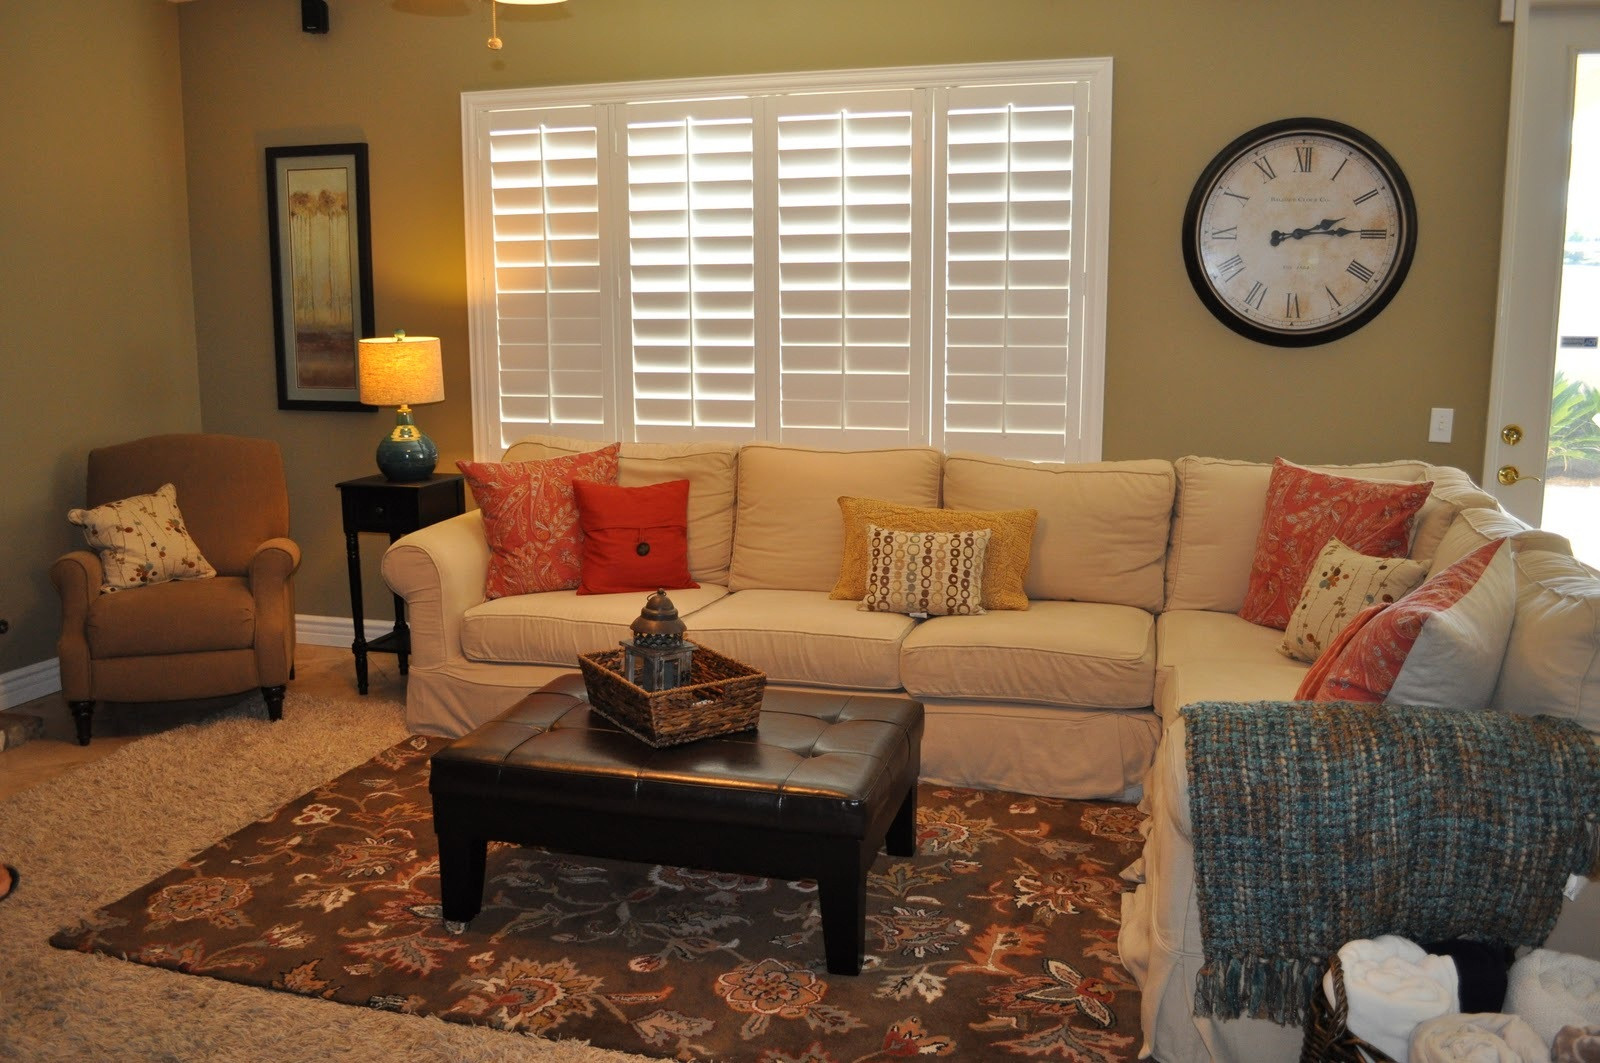 Best ideas about Small Family Room Ideas . Save or Pin Small Room Design small family room decorating ideas Now.